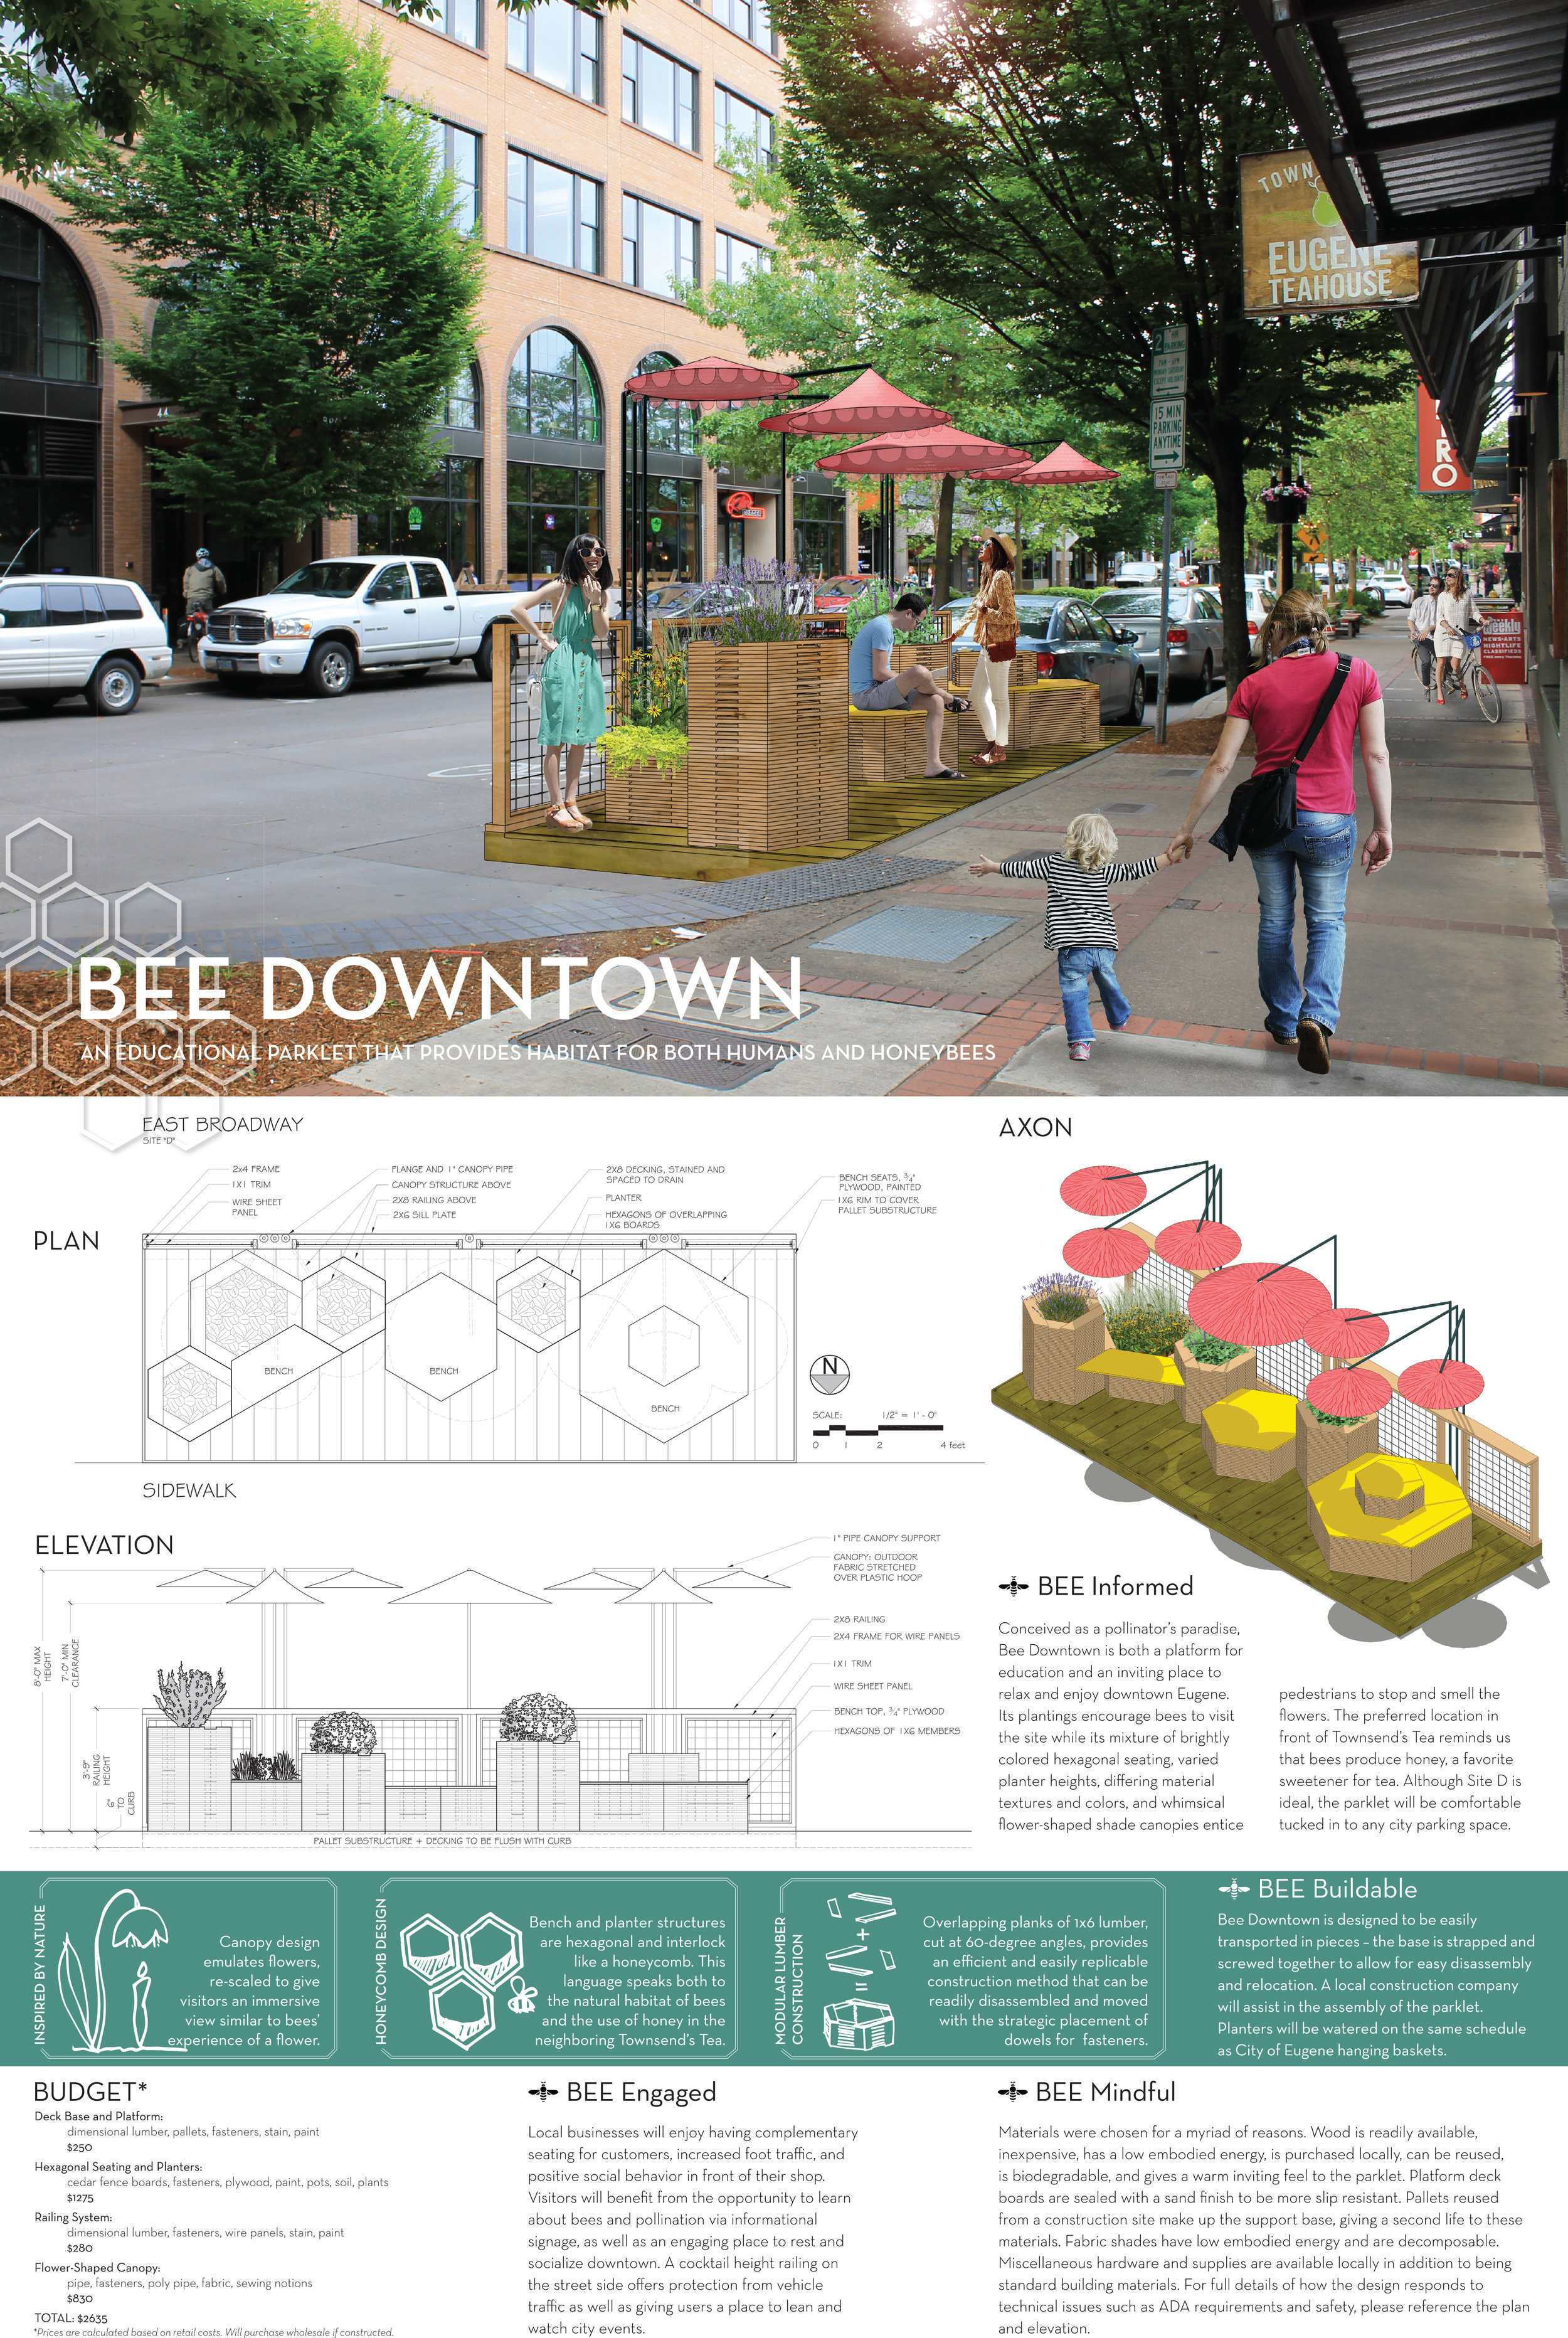 21_bee_downtown_digitalsubmission__1_.jpg